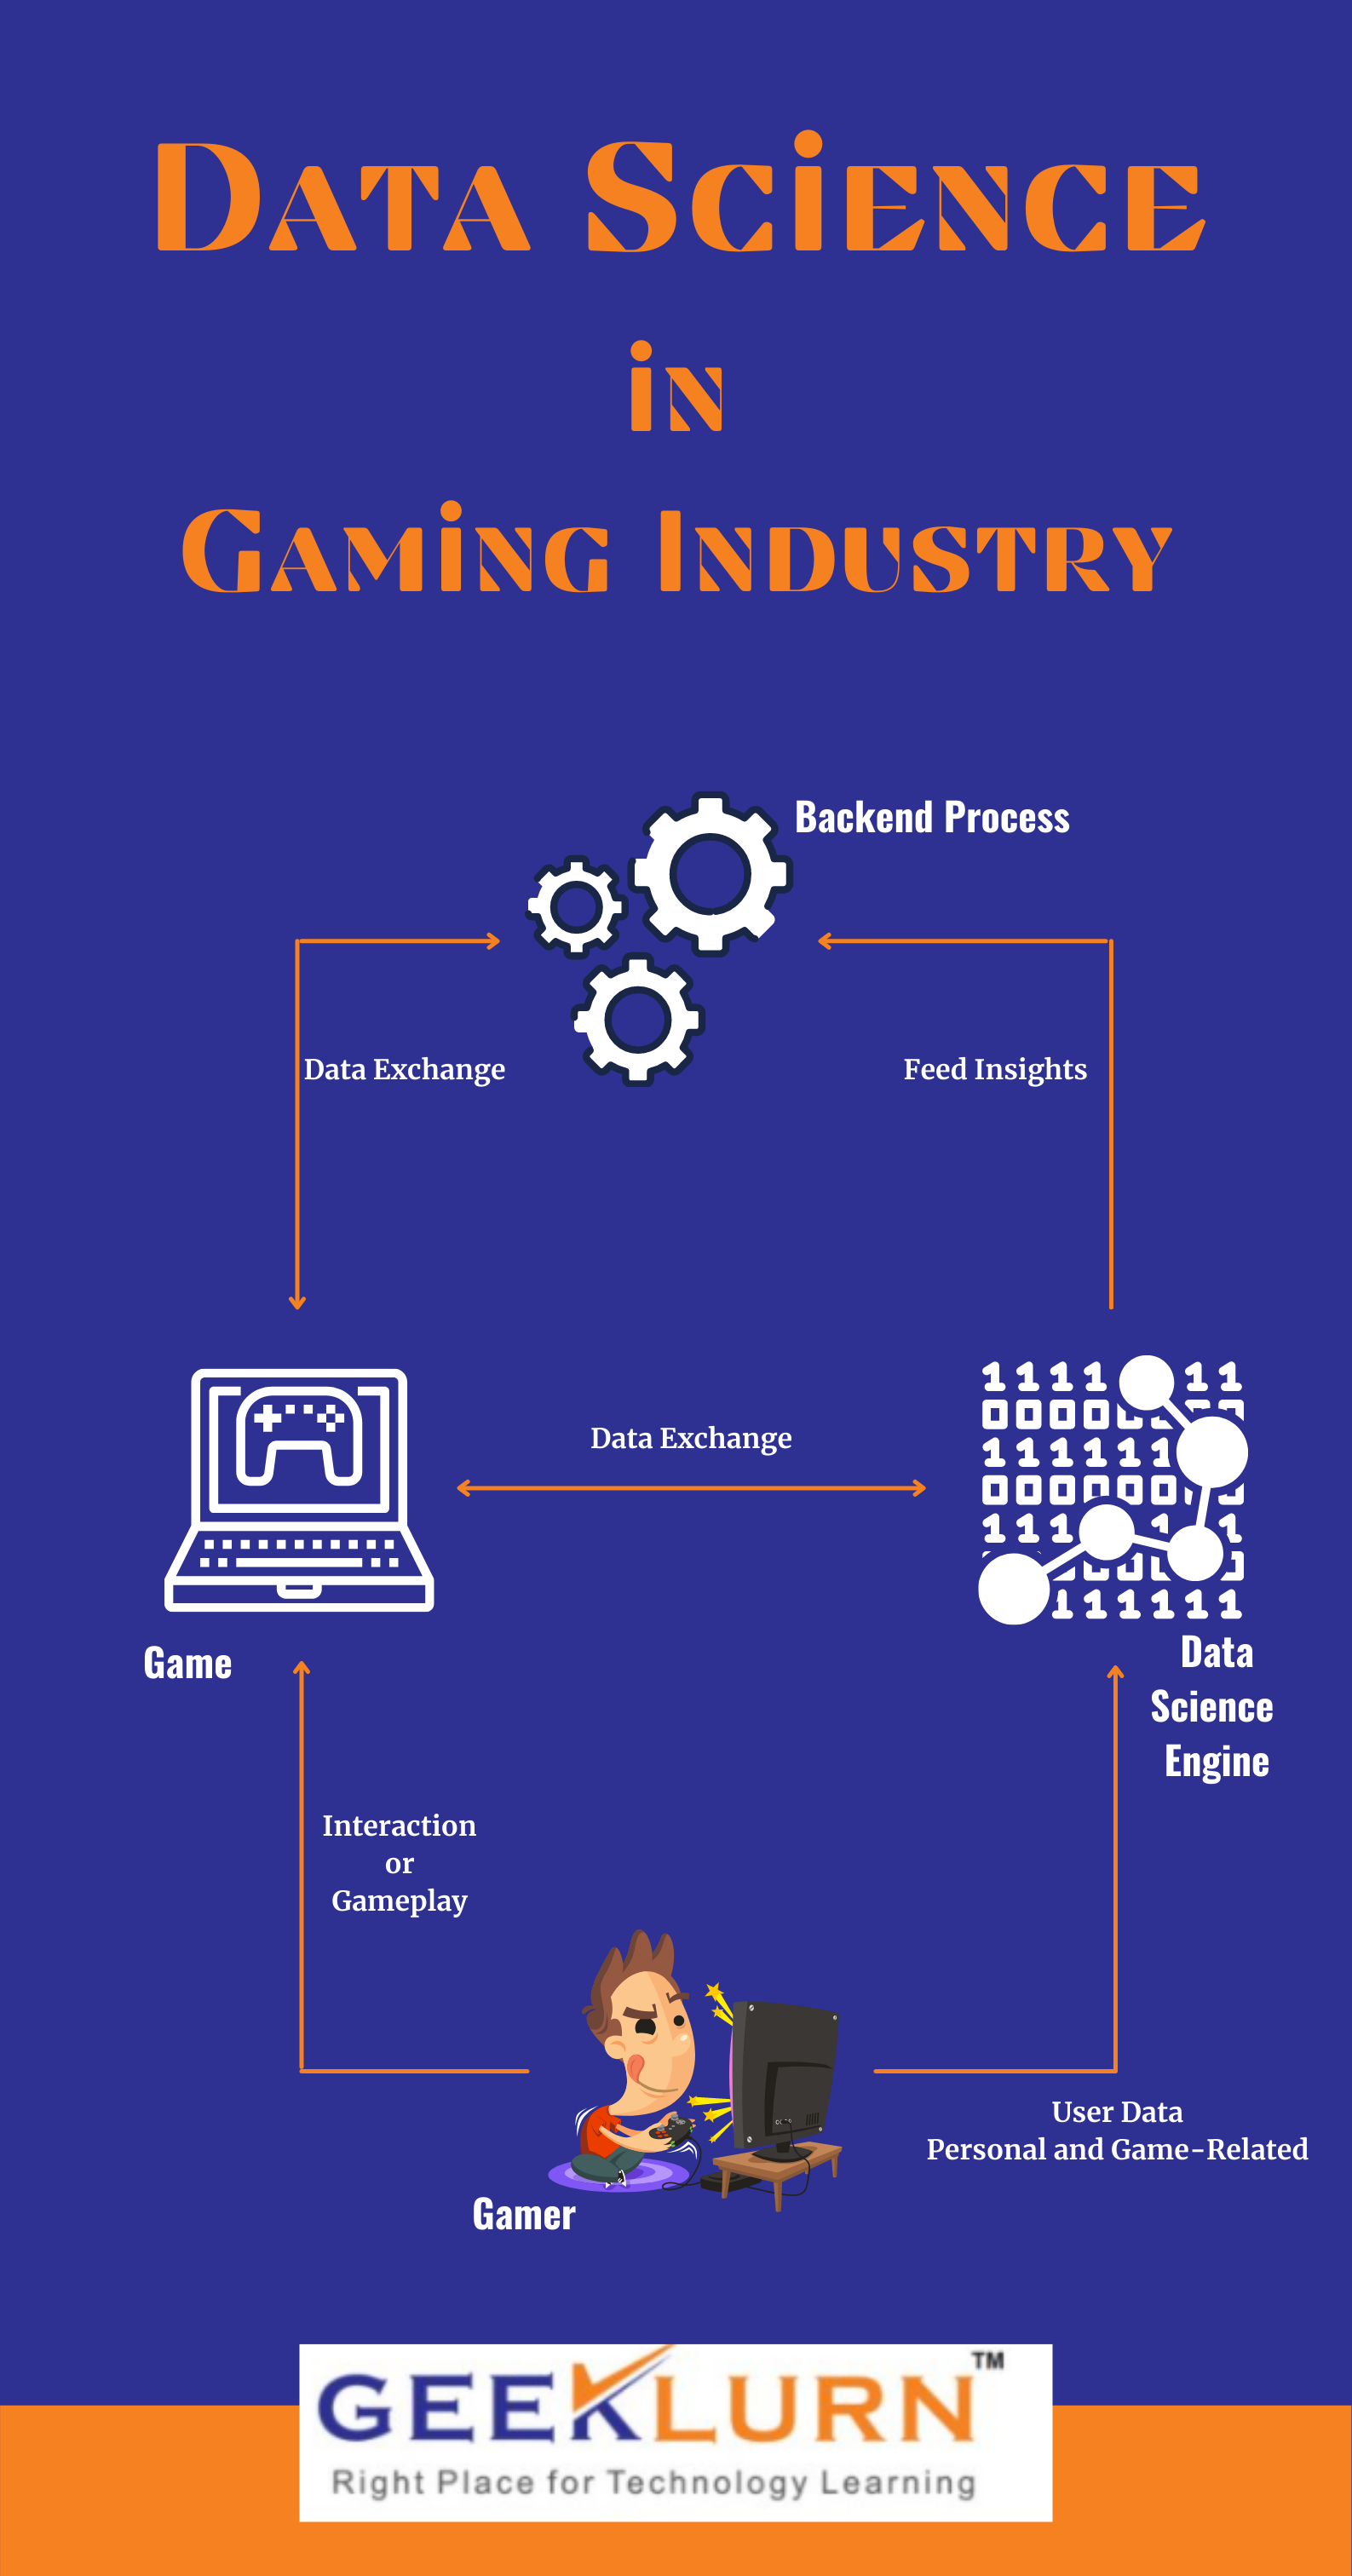 Application of Data science in gaming industry